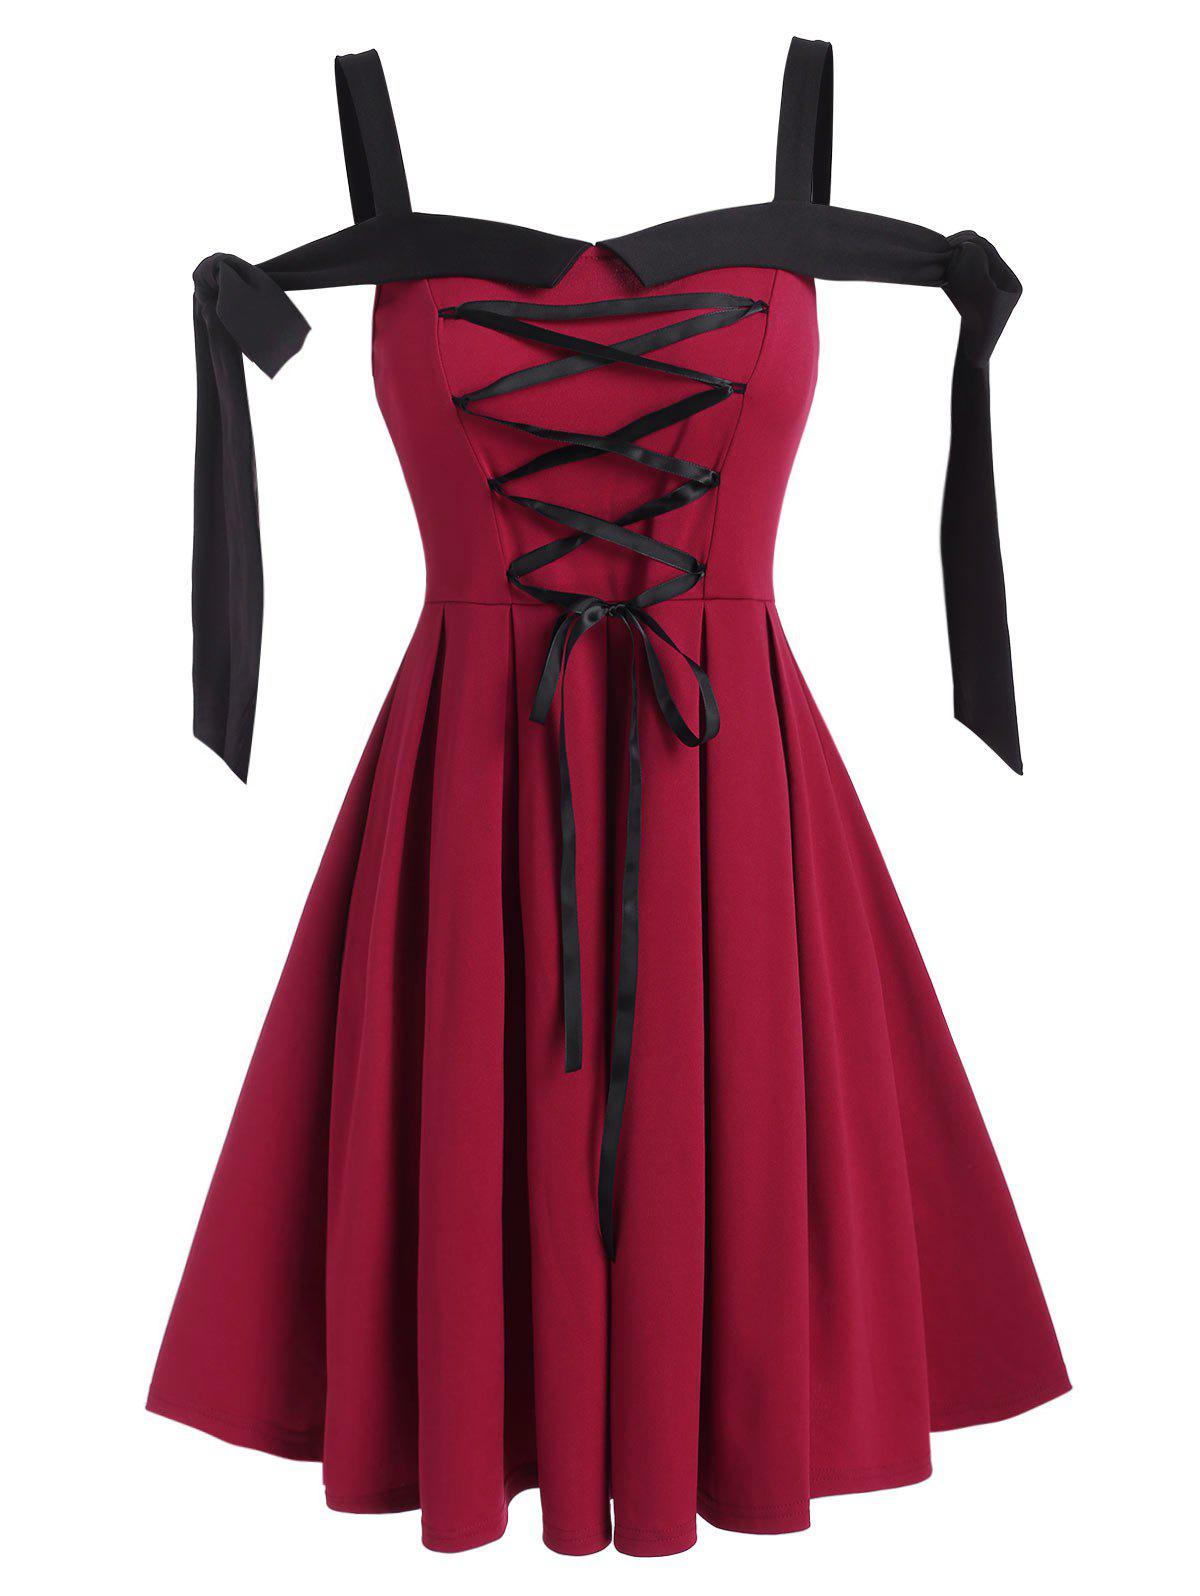 New Lace-up Front Tie Knot Pleated Dress